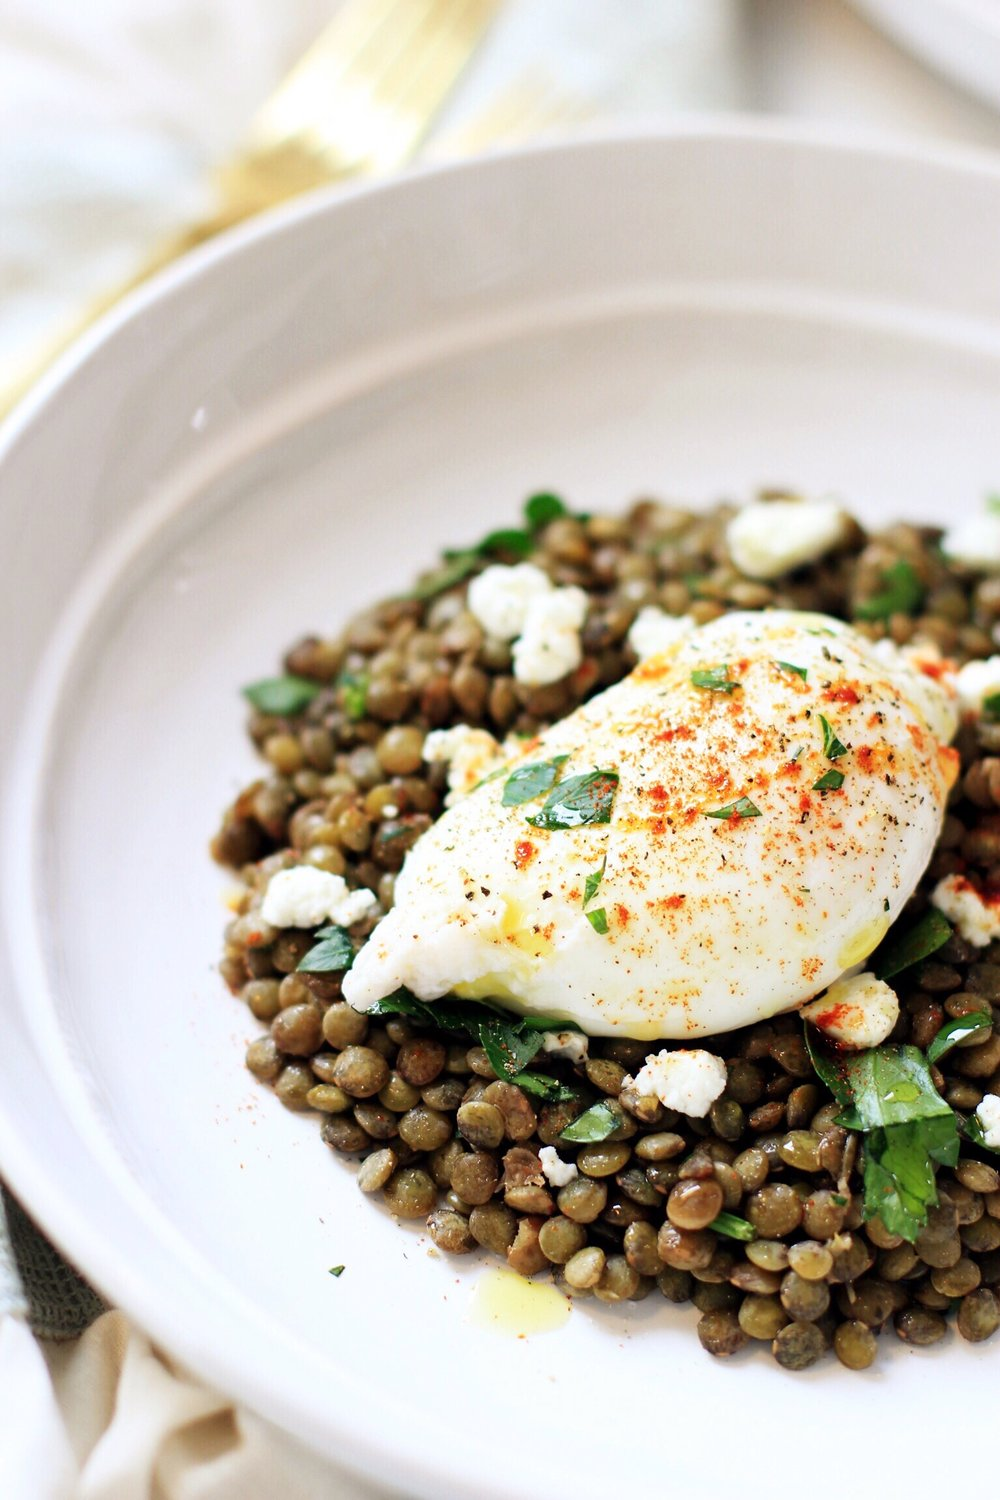 French lentils with lemon vinaigrette, feta, and poached egg - The Pastiche